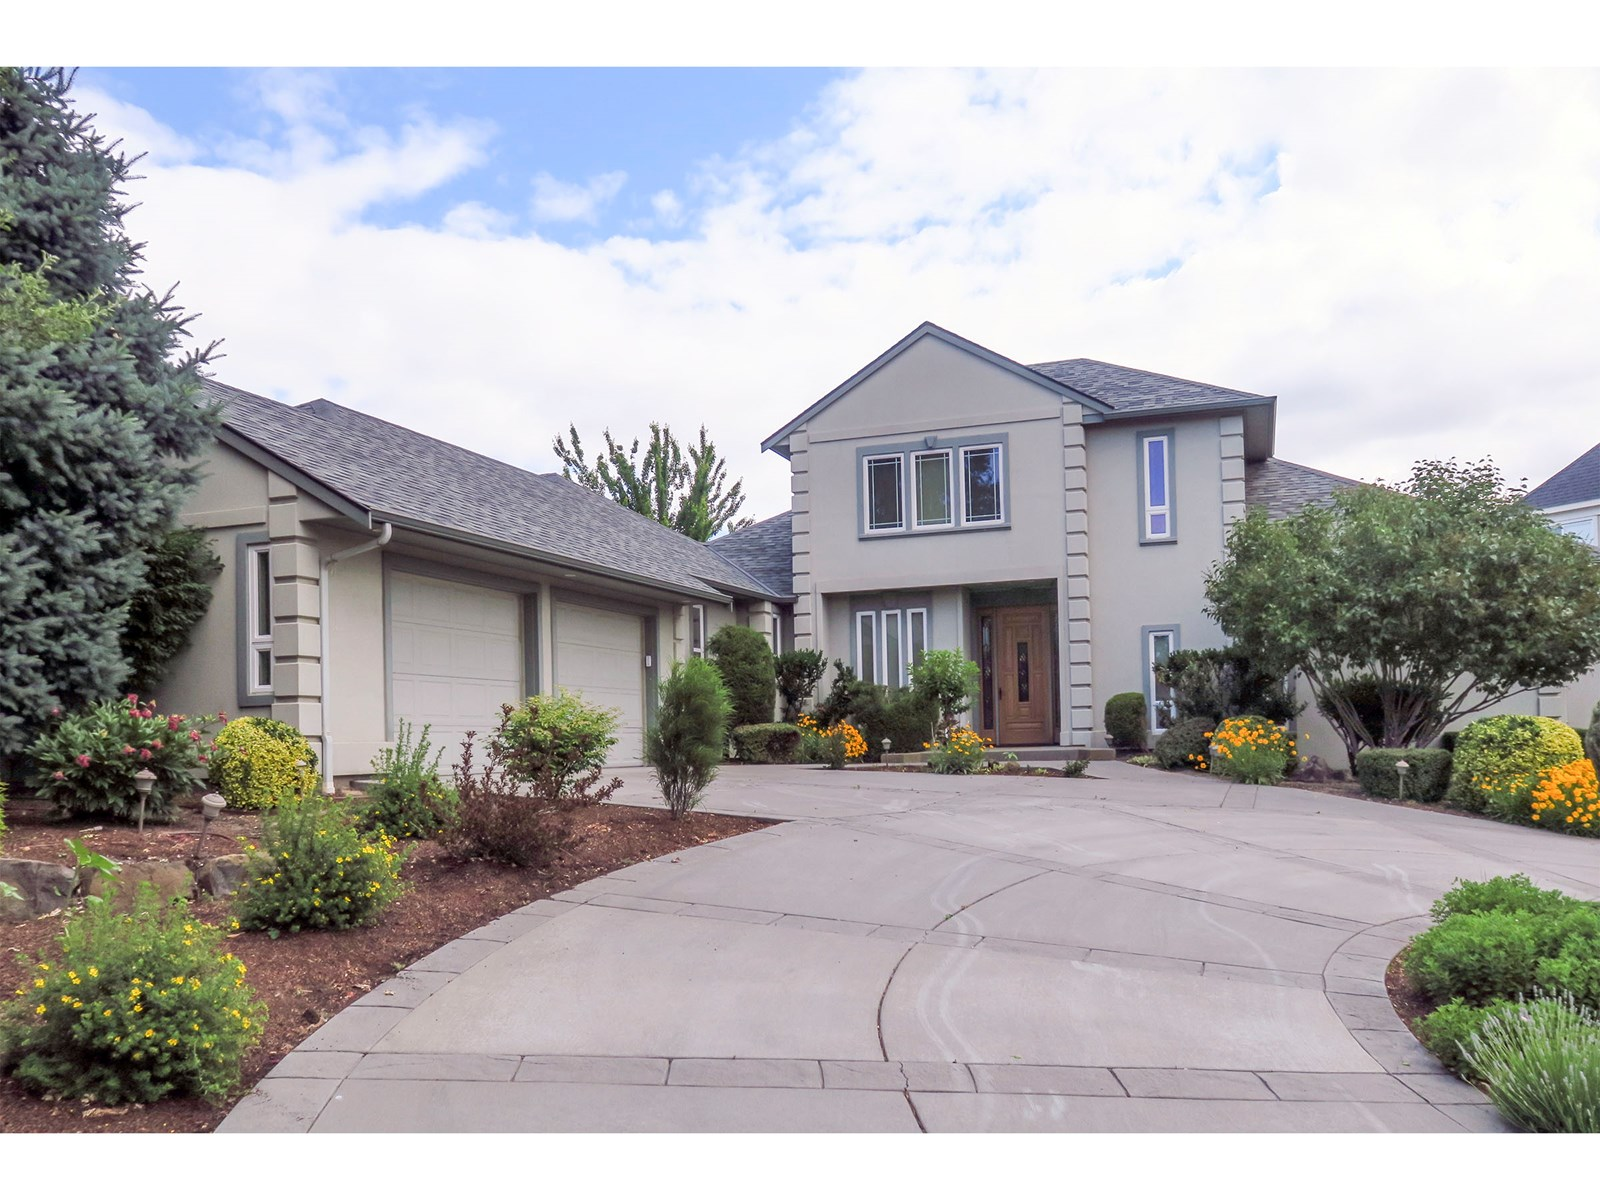 Luxury Home College Place WA Near Walla Walla University